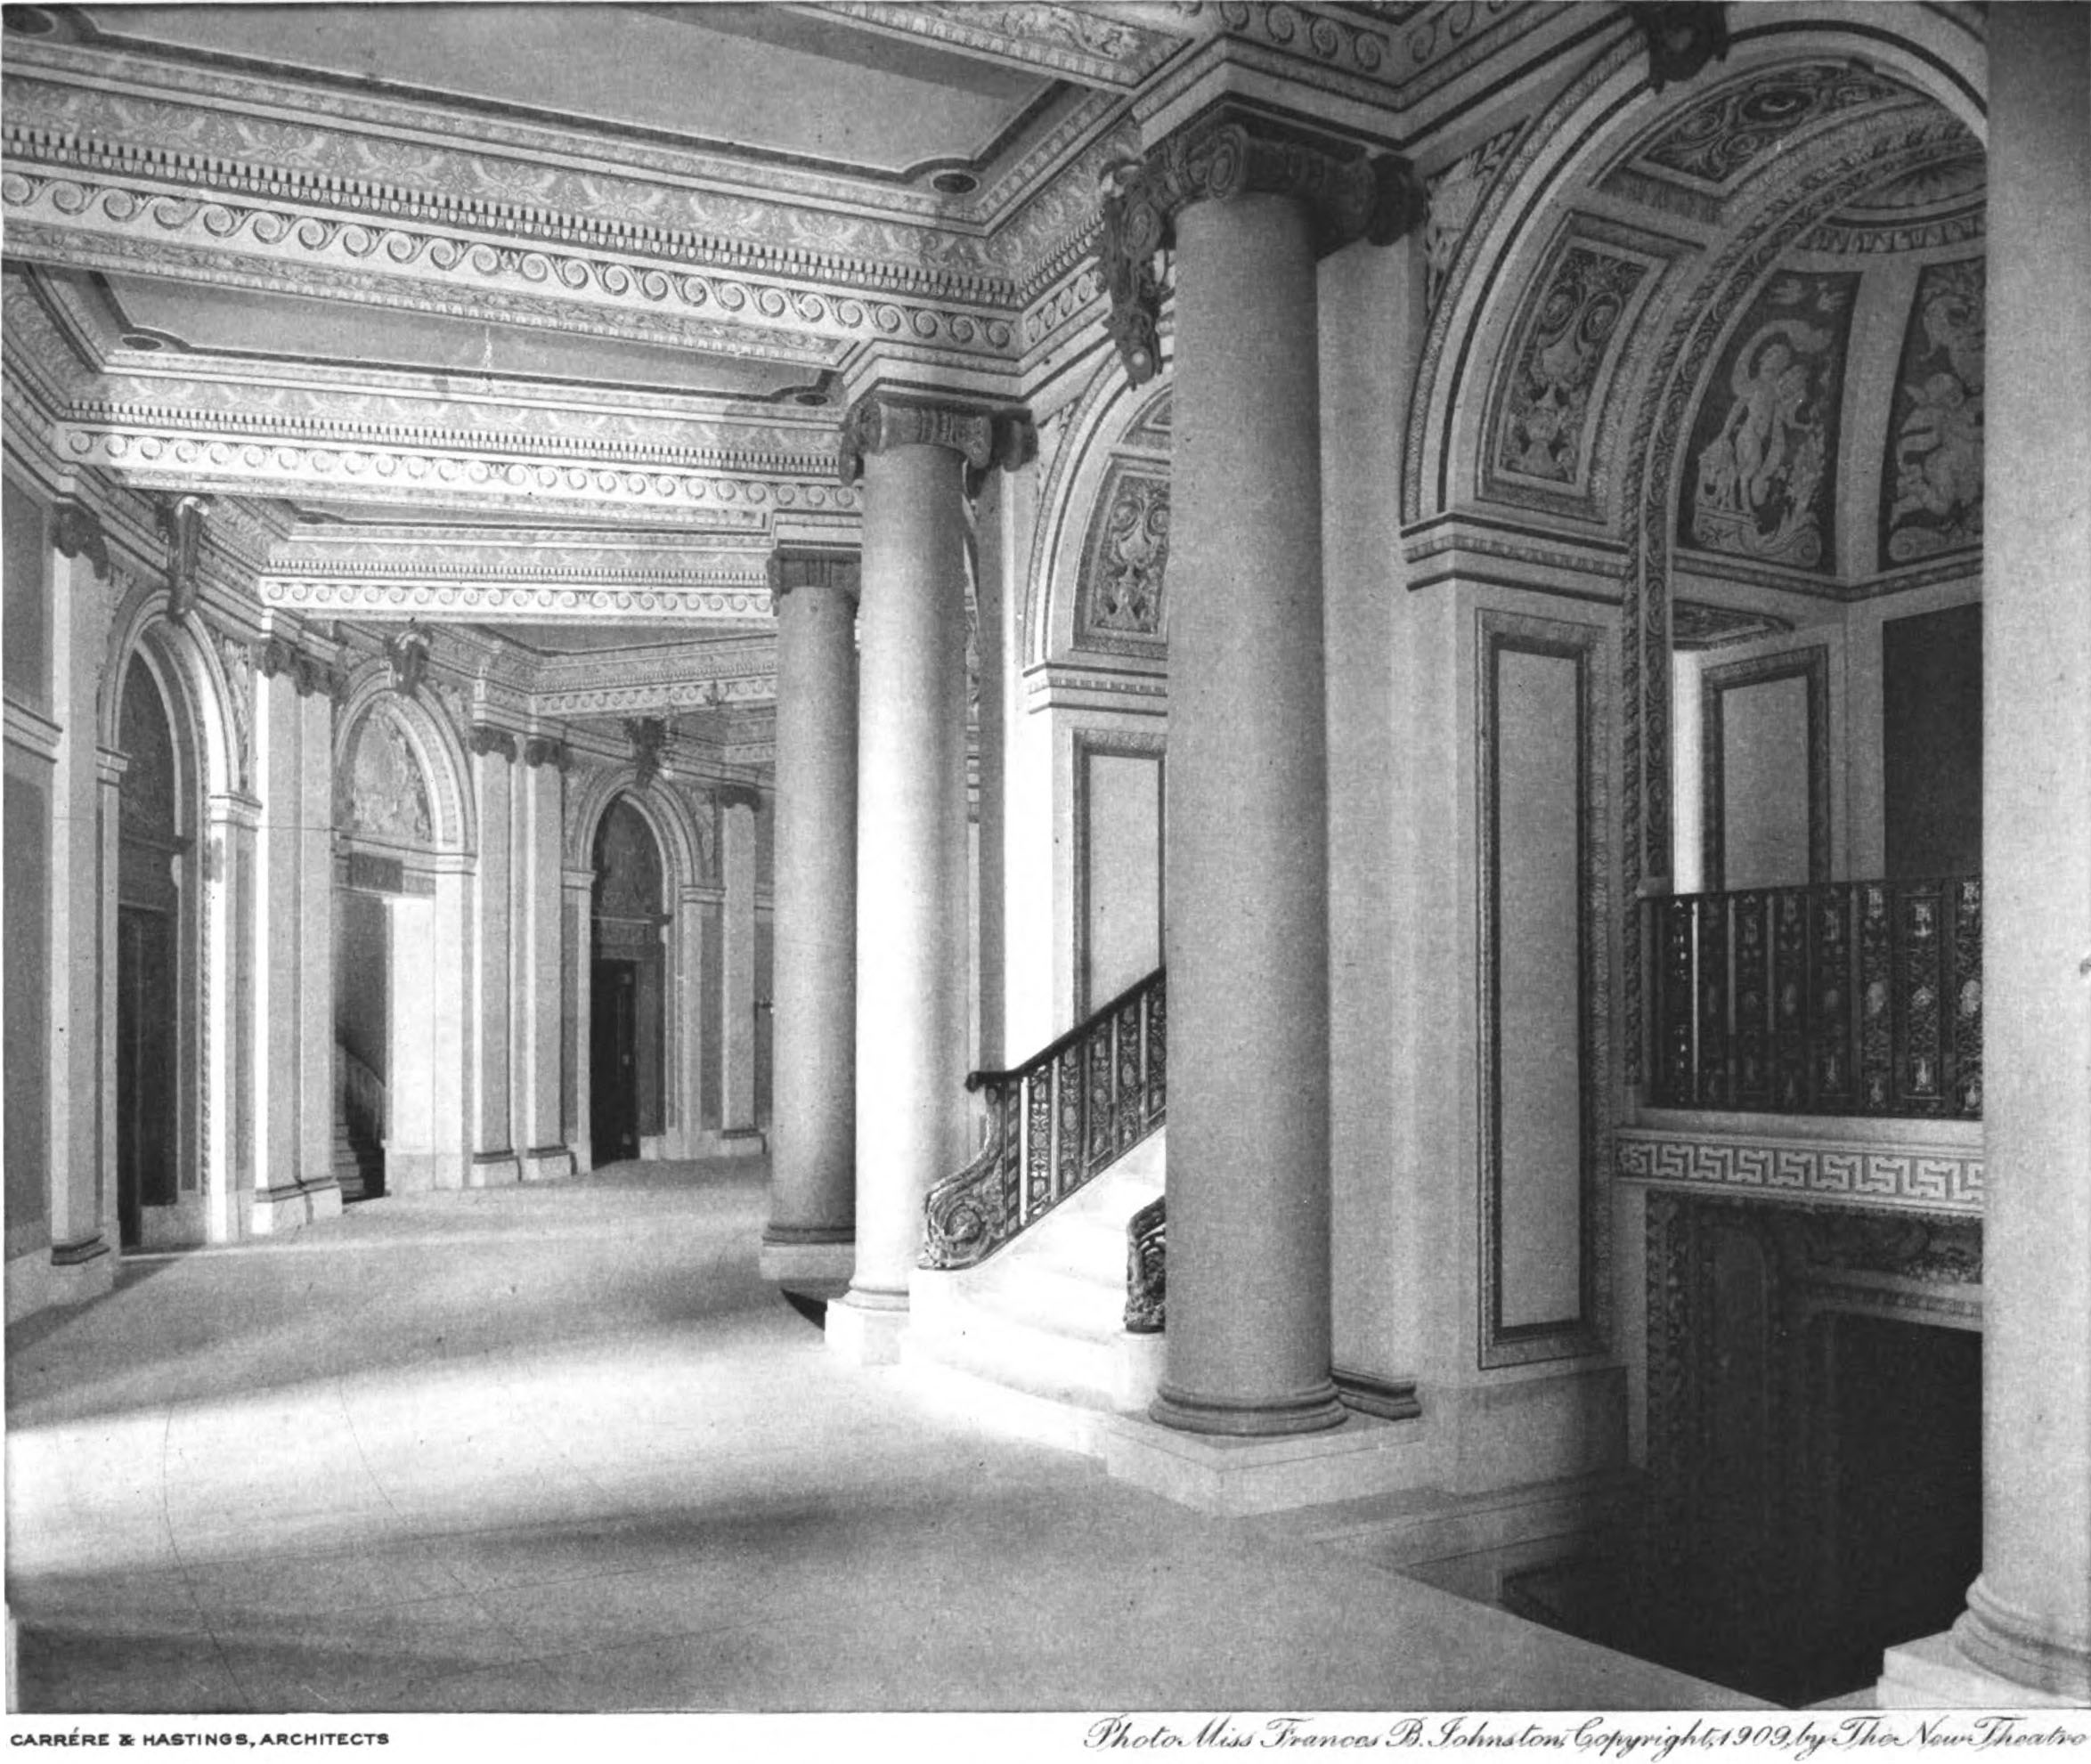 New_Theatre_-_main_foyer_circulation_-_The_Architect_1909 Rose House Founders Floor Plan on rose photography, rose floor pattern, rose garden plan, rose design, rose color, rose map, rose information, rose site plan,